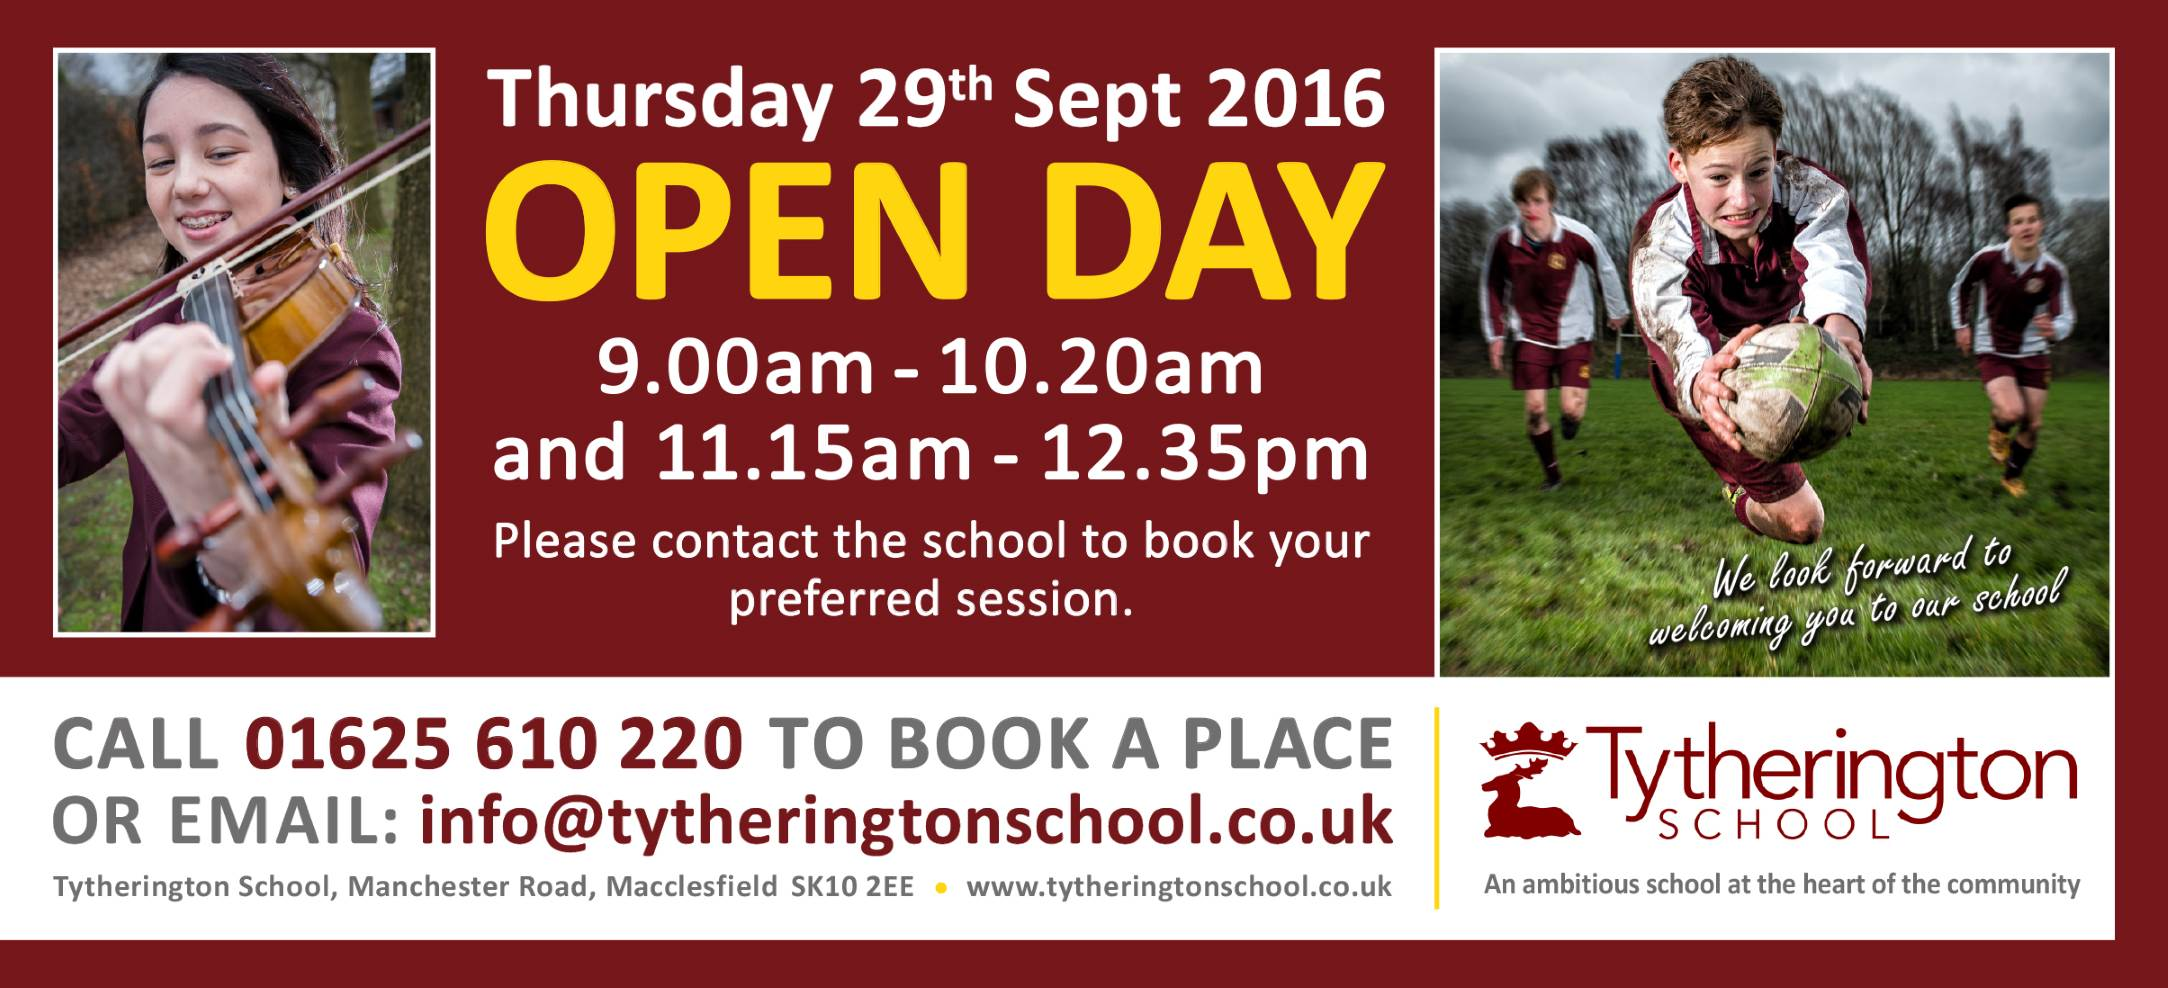 open-day-flyer-29th-sep